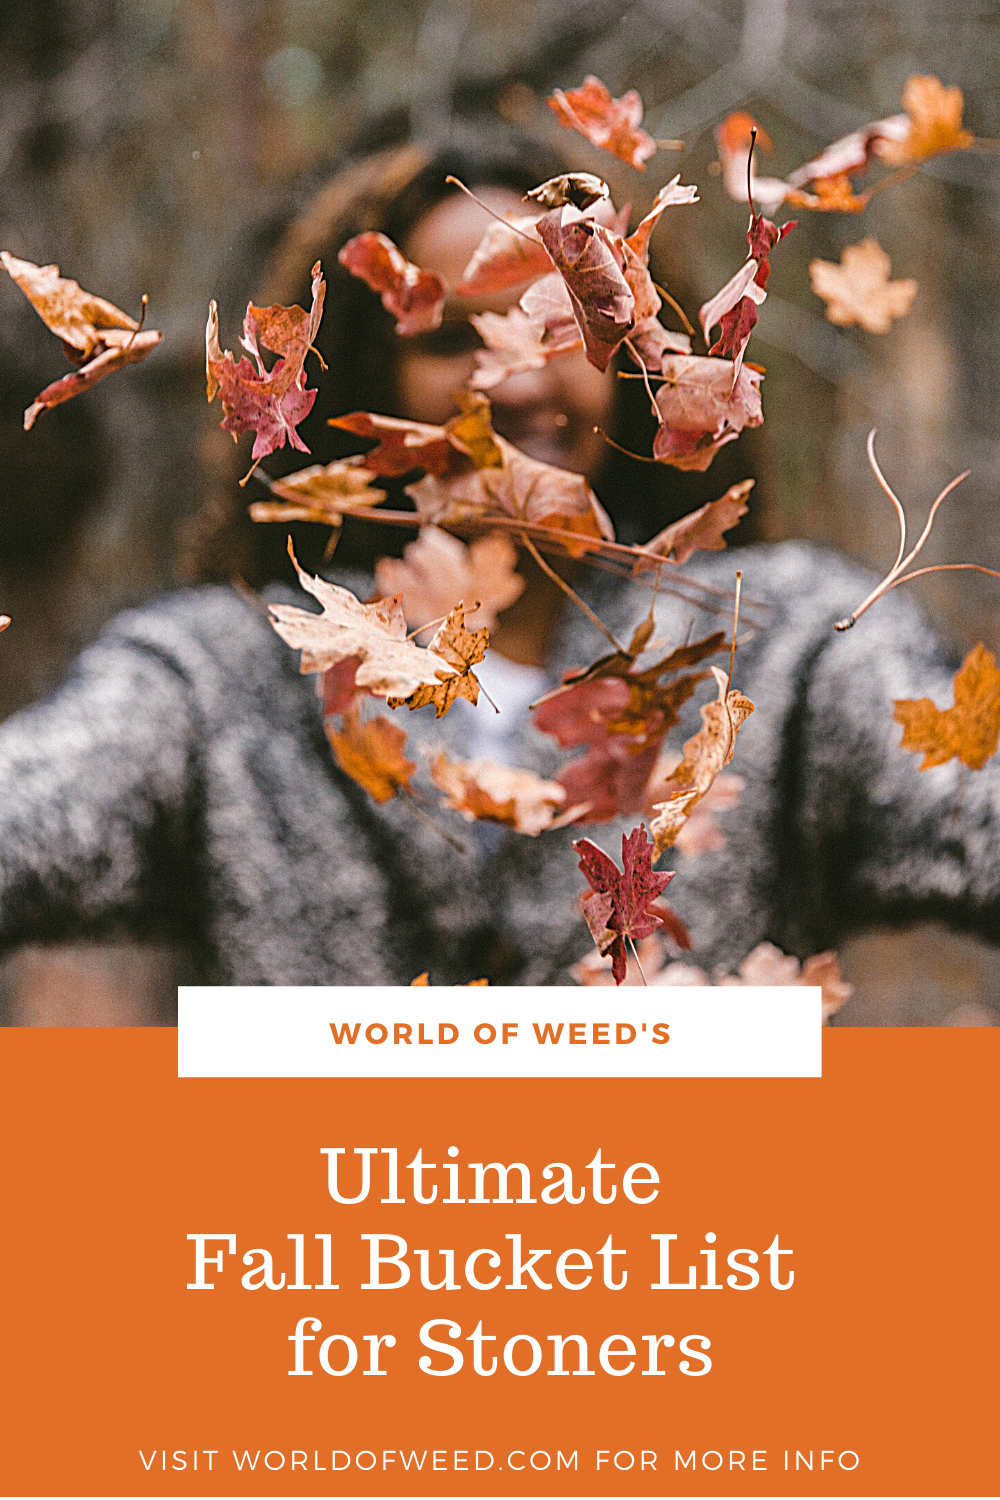 The Ultimate Fall Bucket List for Stoners